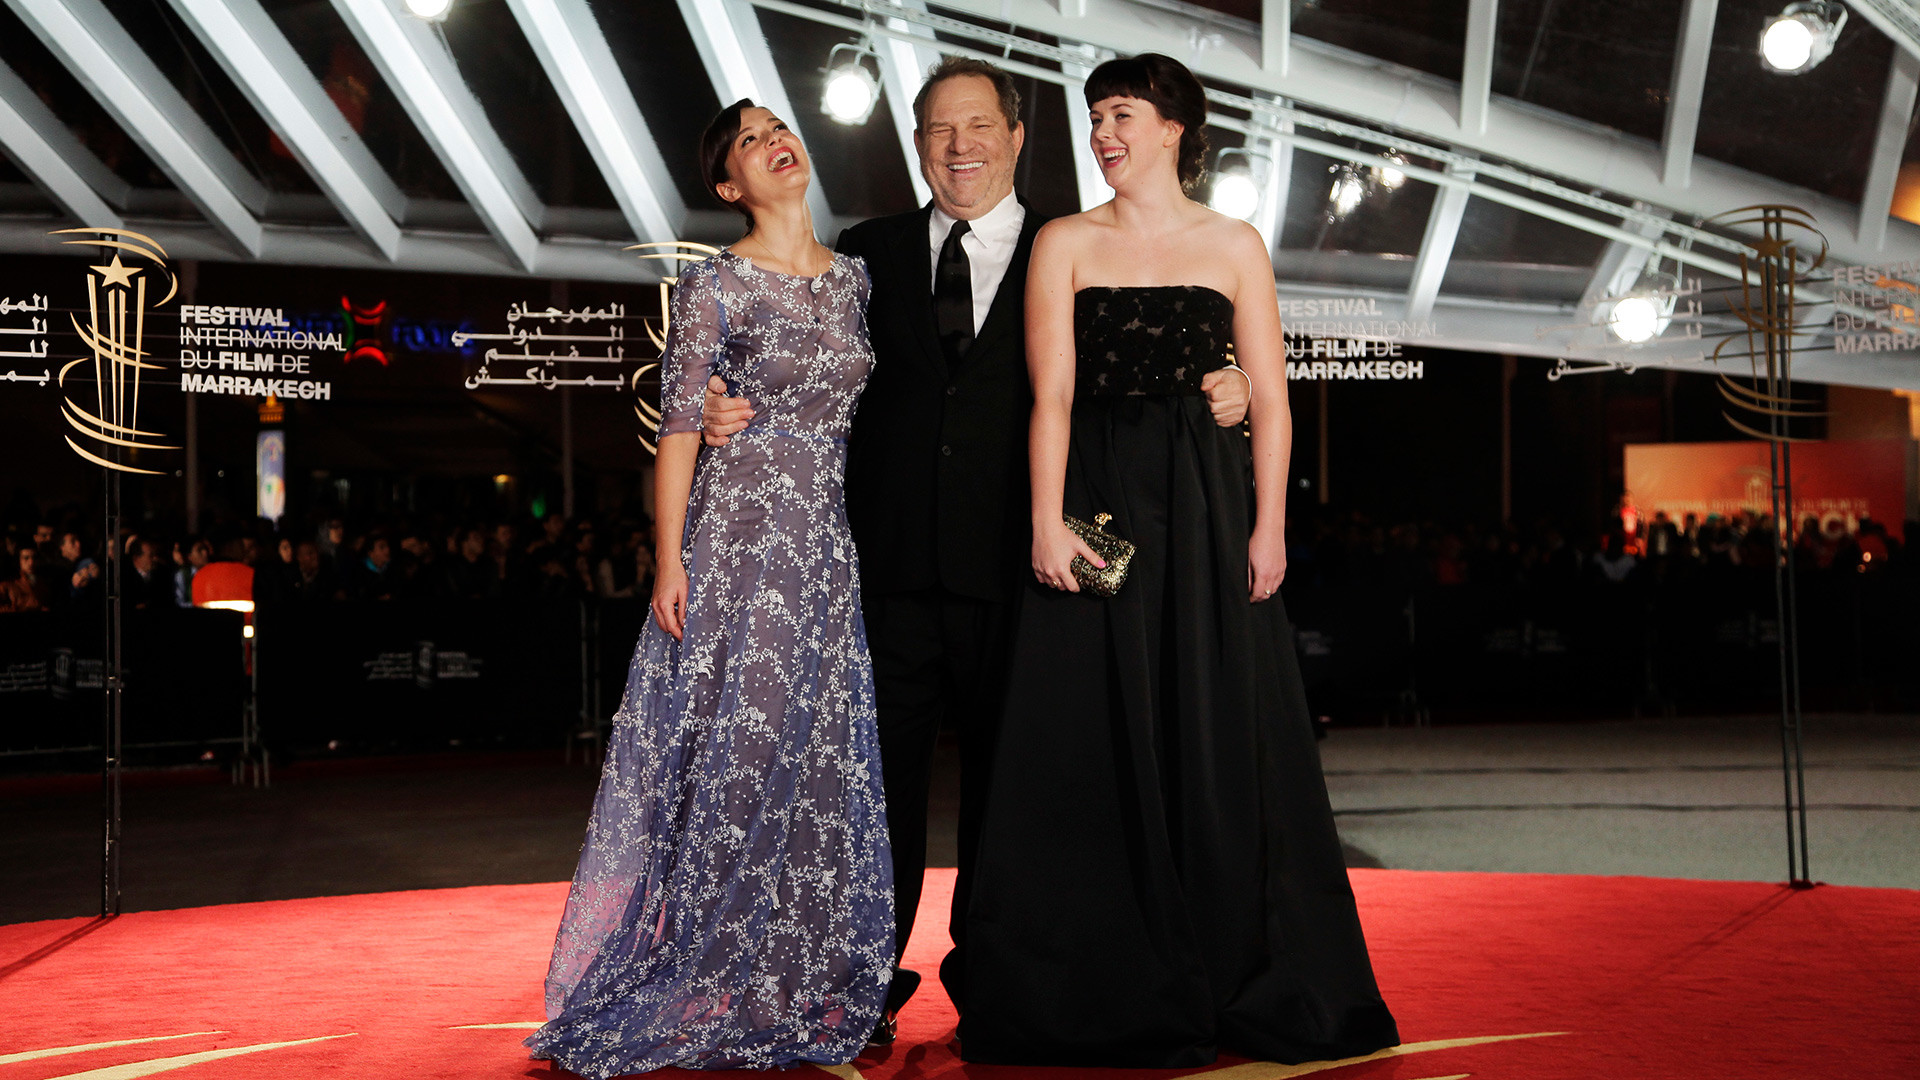 Producer Harvey Weinstein attends the 13th annual Marrakech International Film Festival with actresses Valeria Bilello (L) and Alexandra Roach (R)